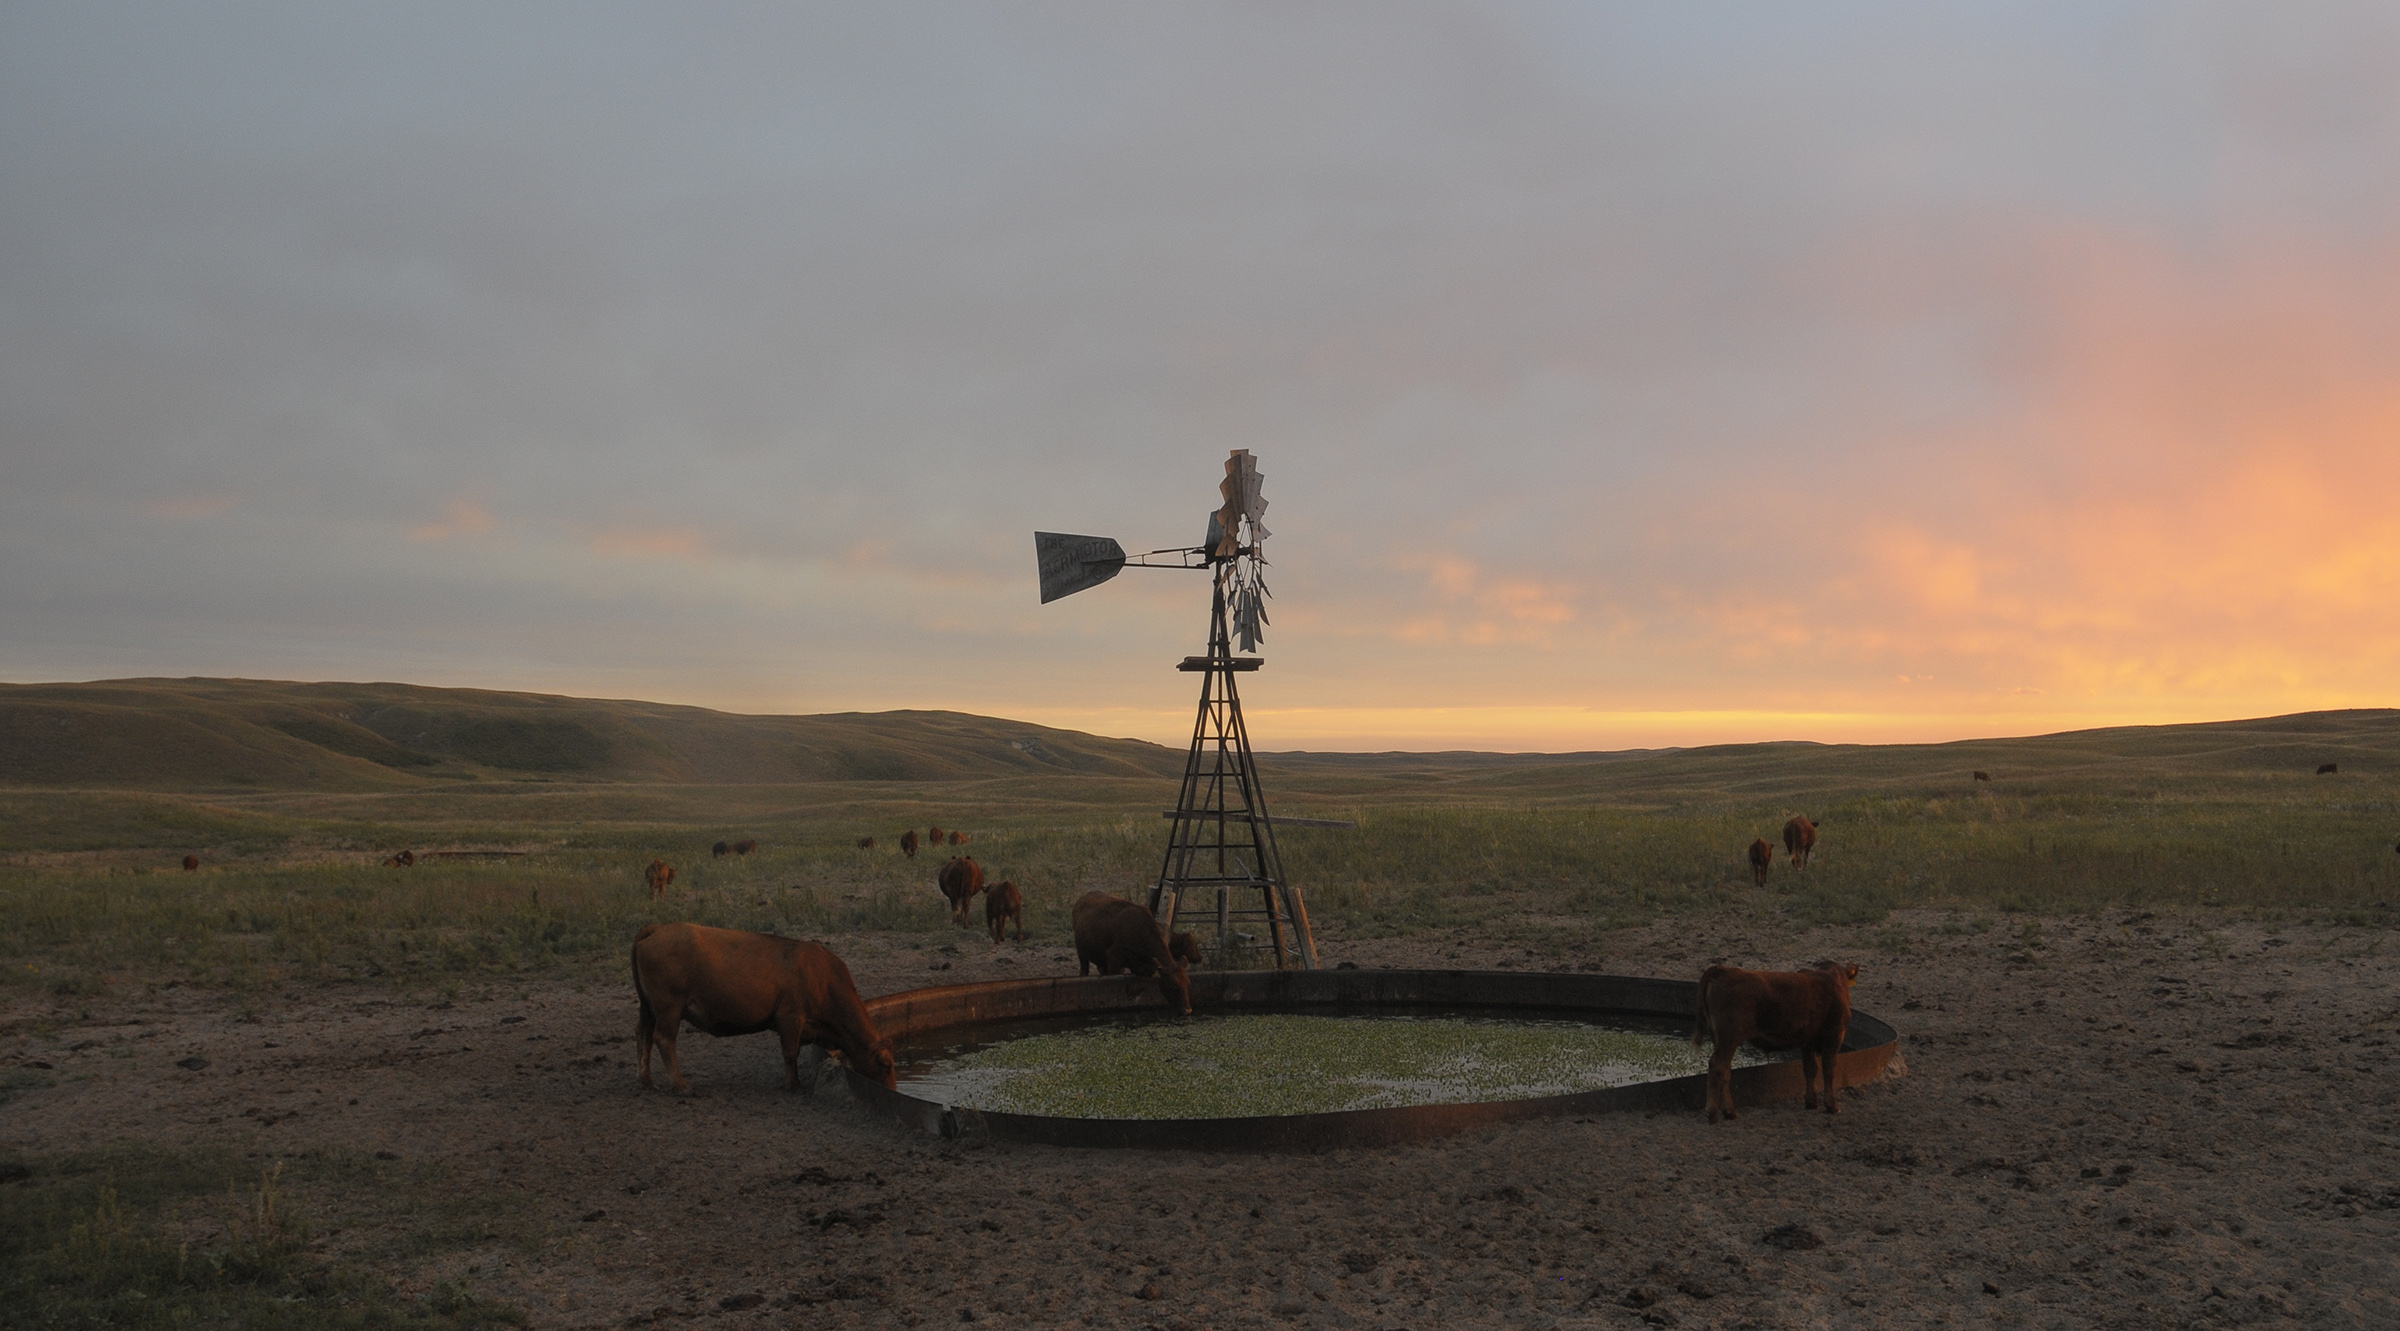 This Sandhills windmill pulls up clear, cold water from the aquifer below, a reliable water supply in a semi-arid landscape. (Michael Forsberg)